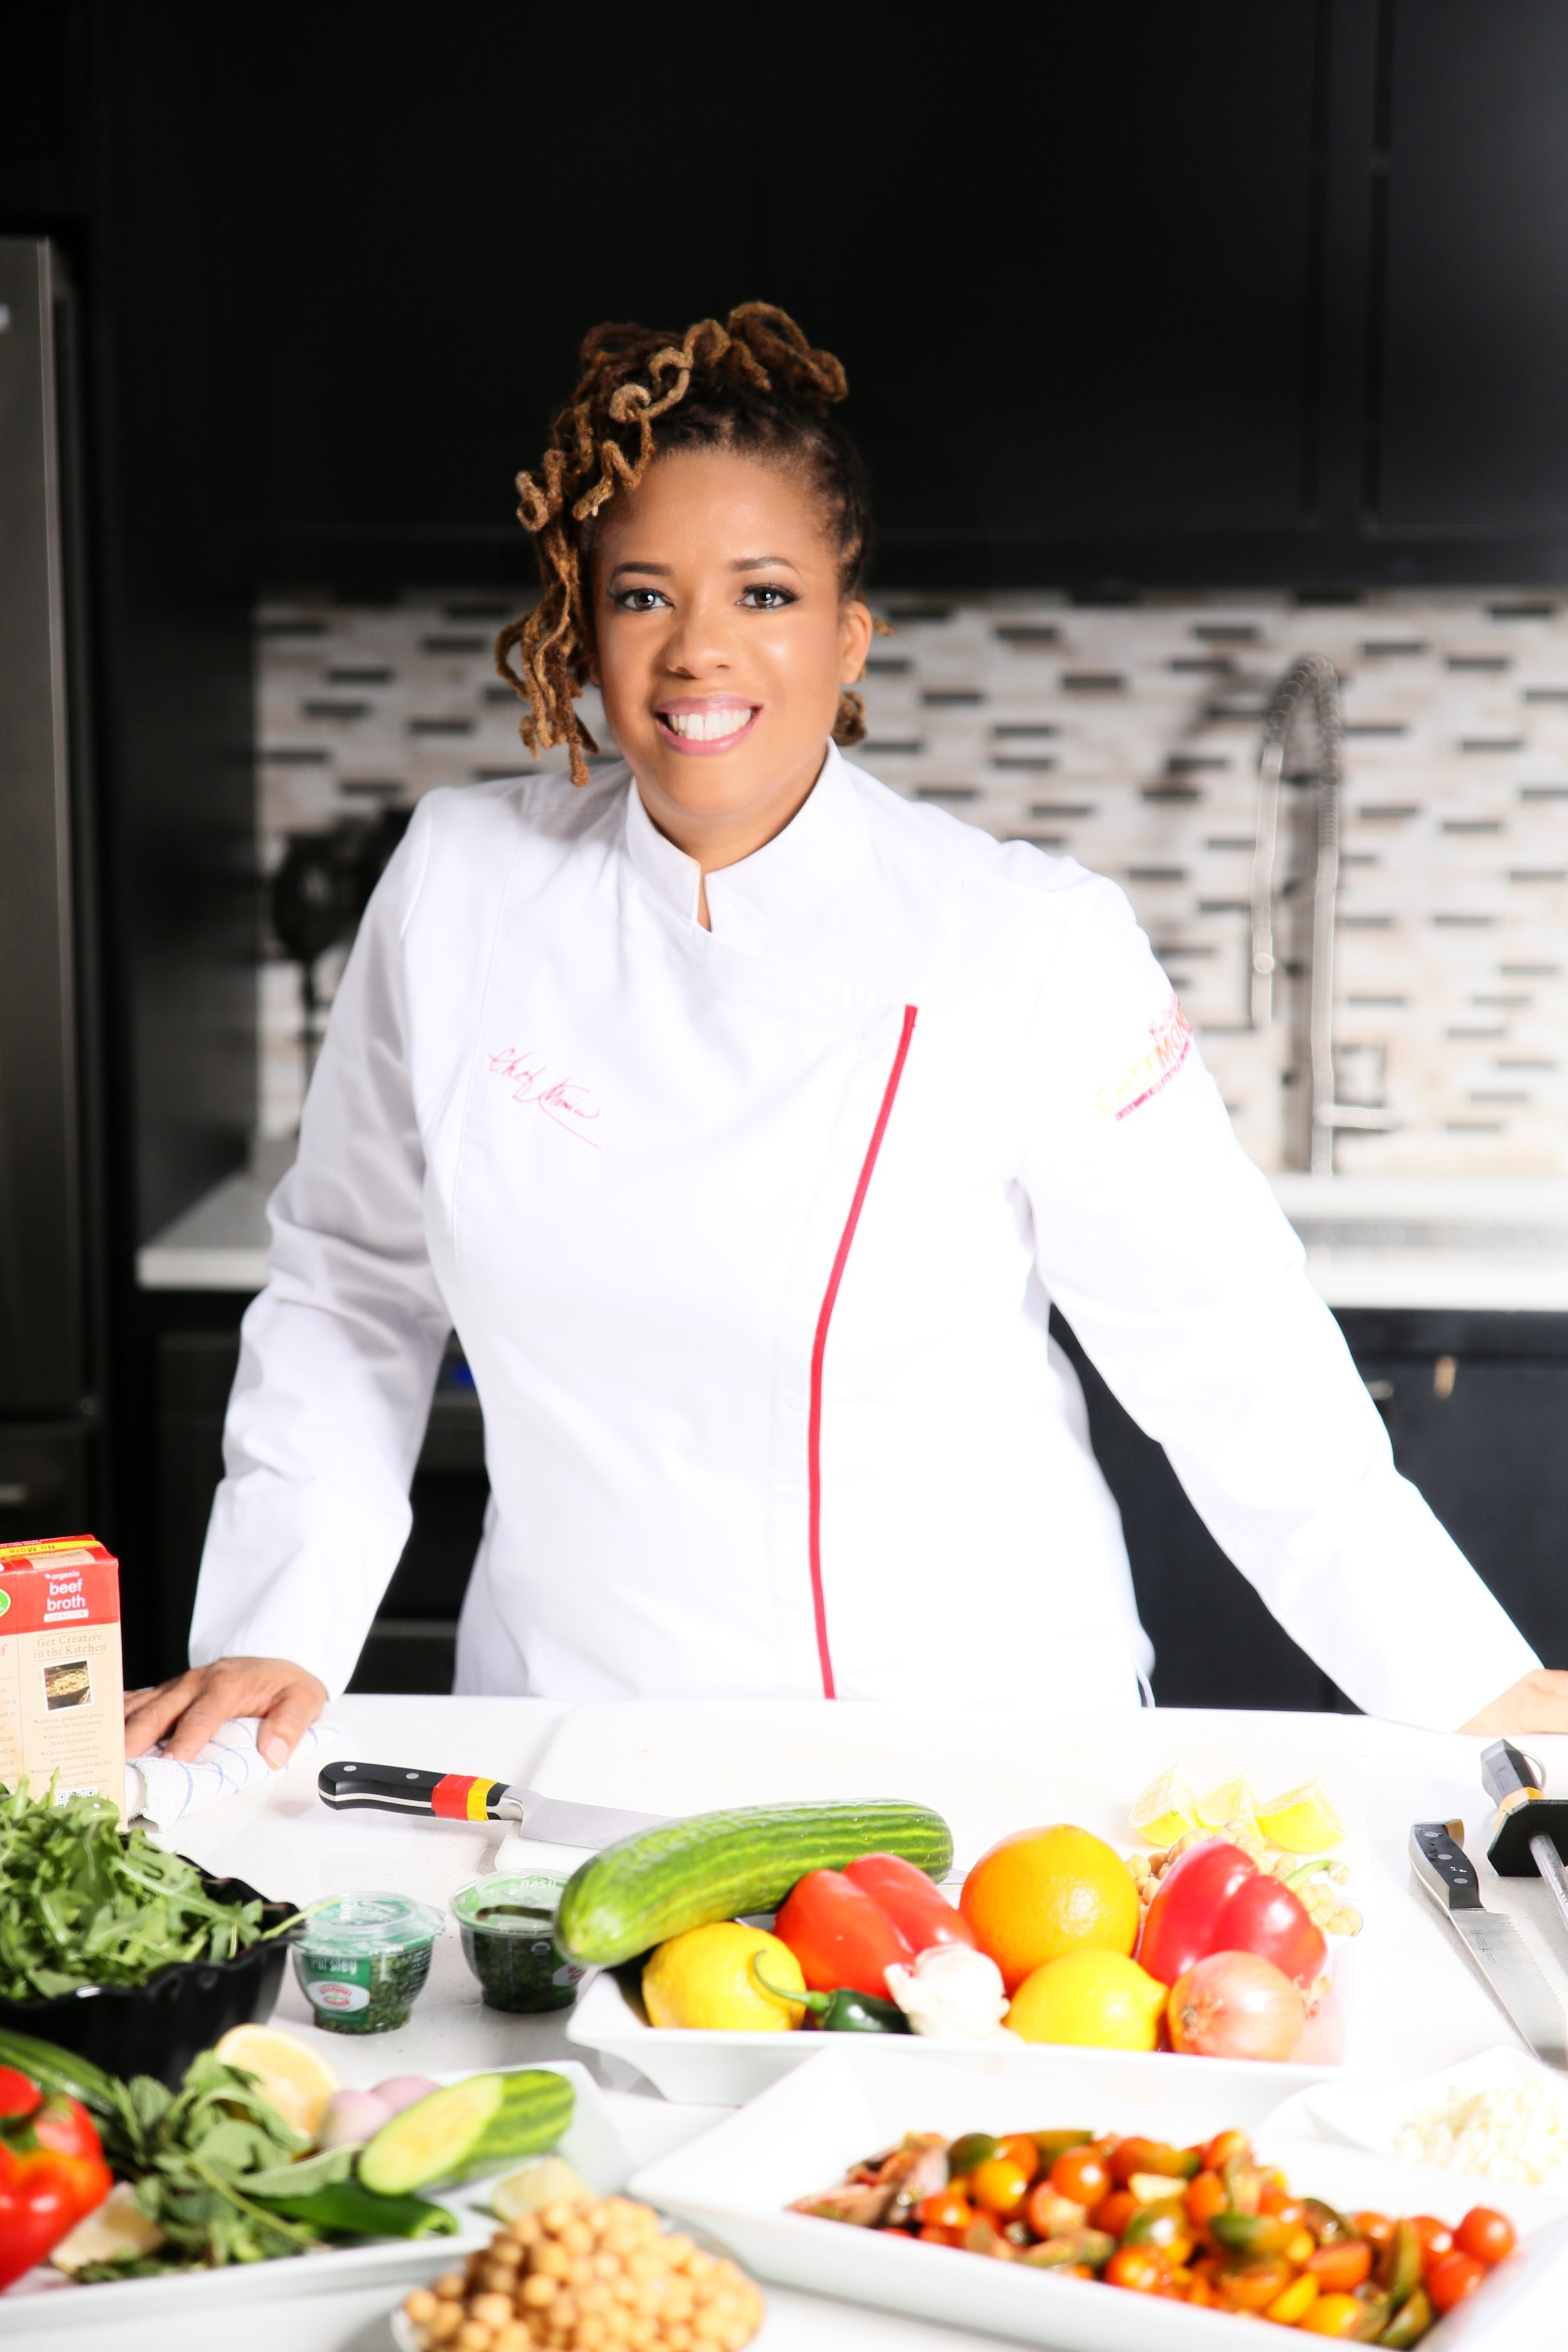 Chef Smith Smith can help you to create delicious and tasty Dishes! Book your group now!